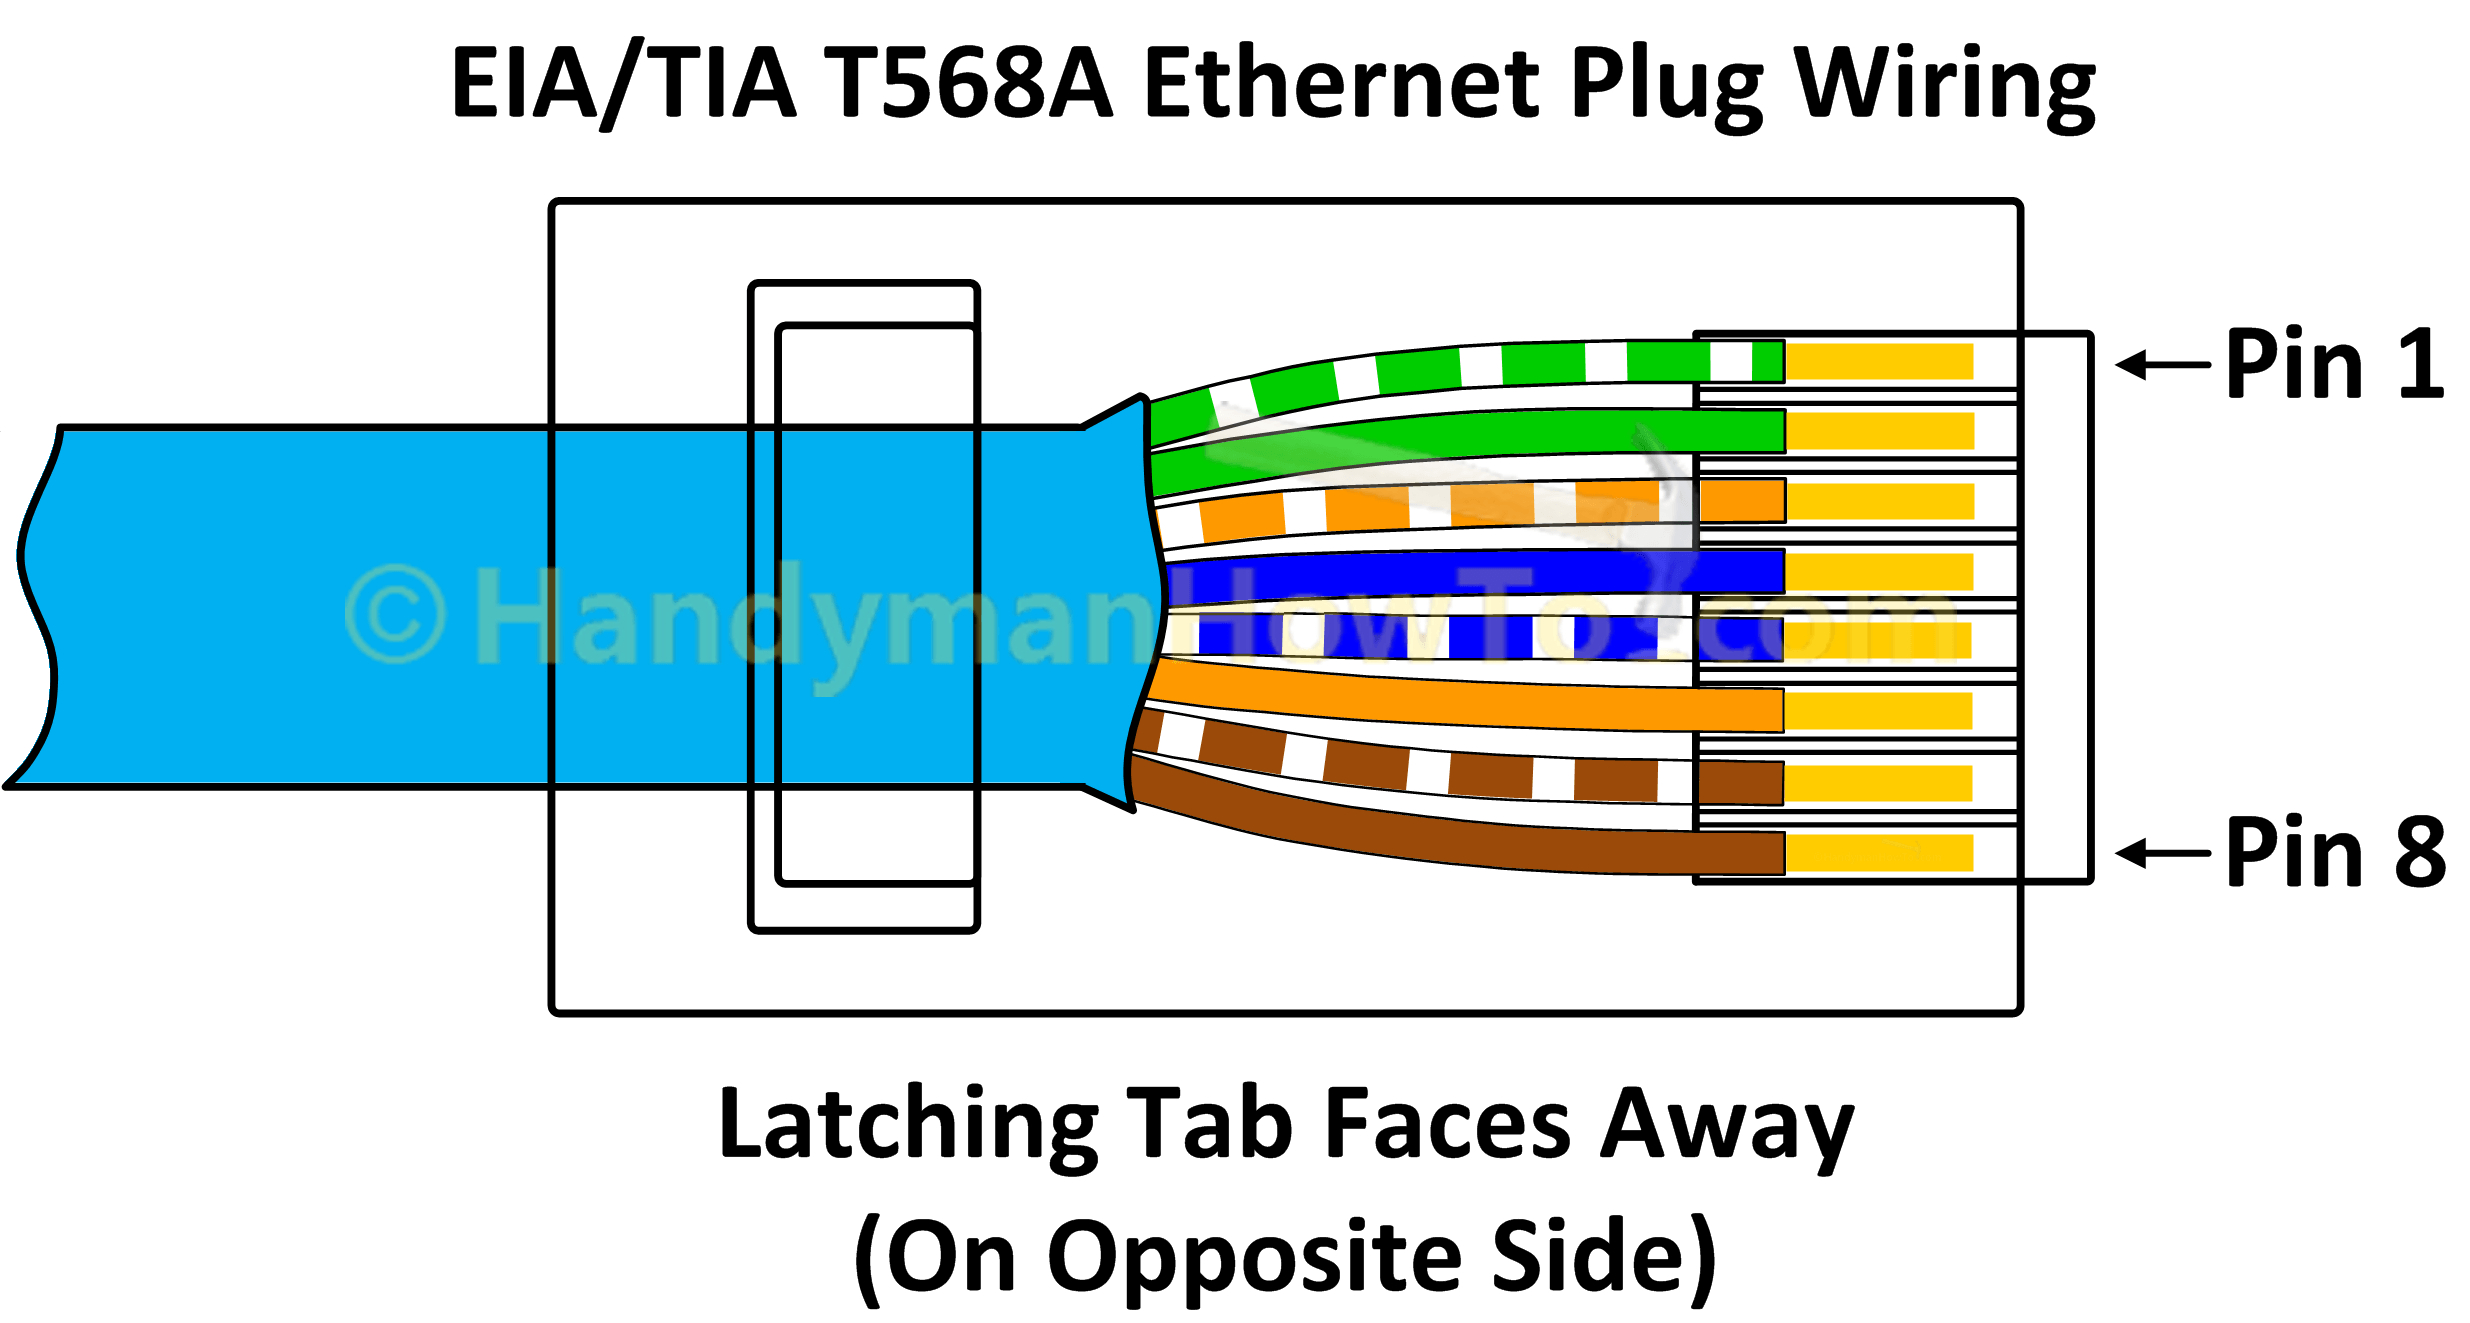 Usb Rj45 Wiring Diagram | Wiring Diagram - Usb Signalink Rj45 Wiring Diagram